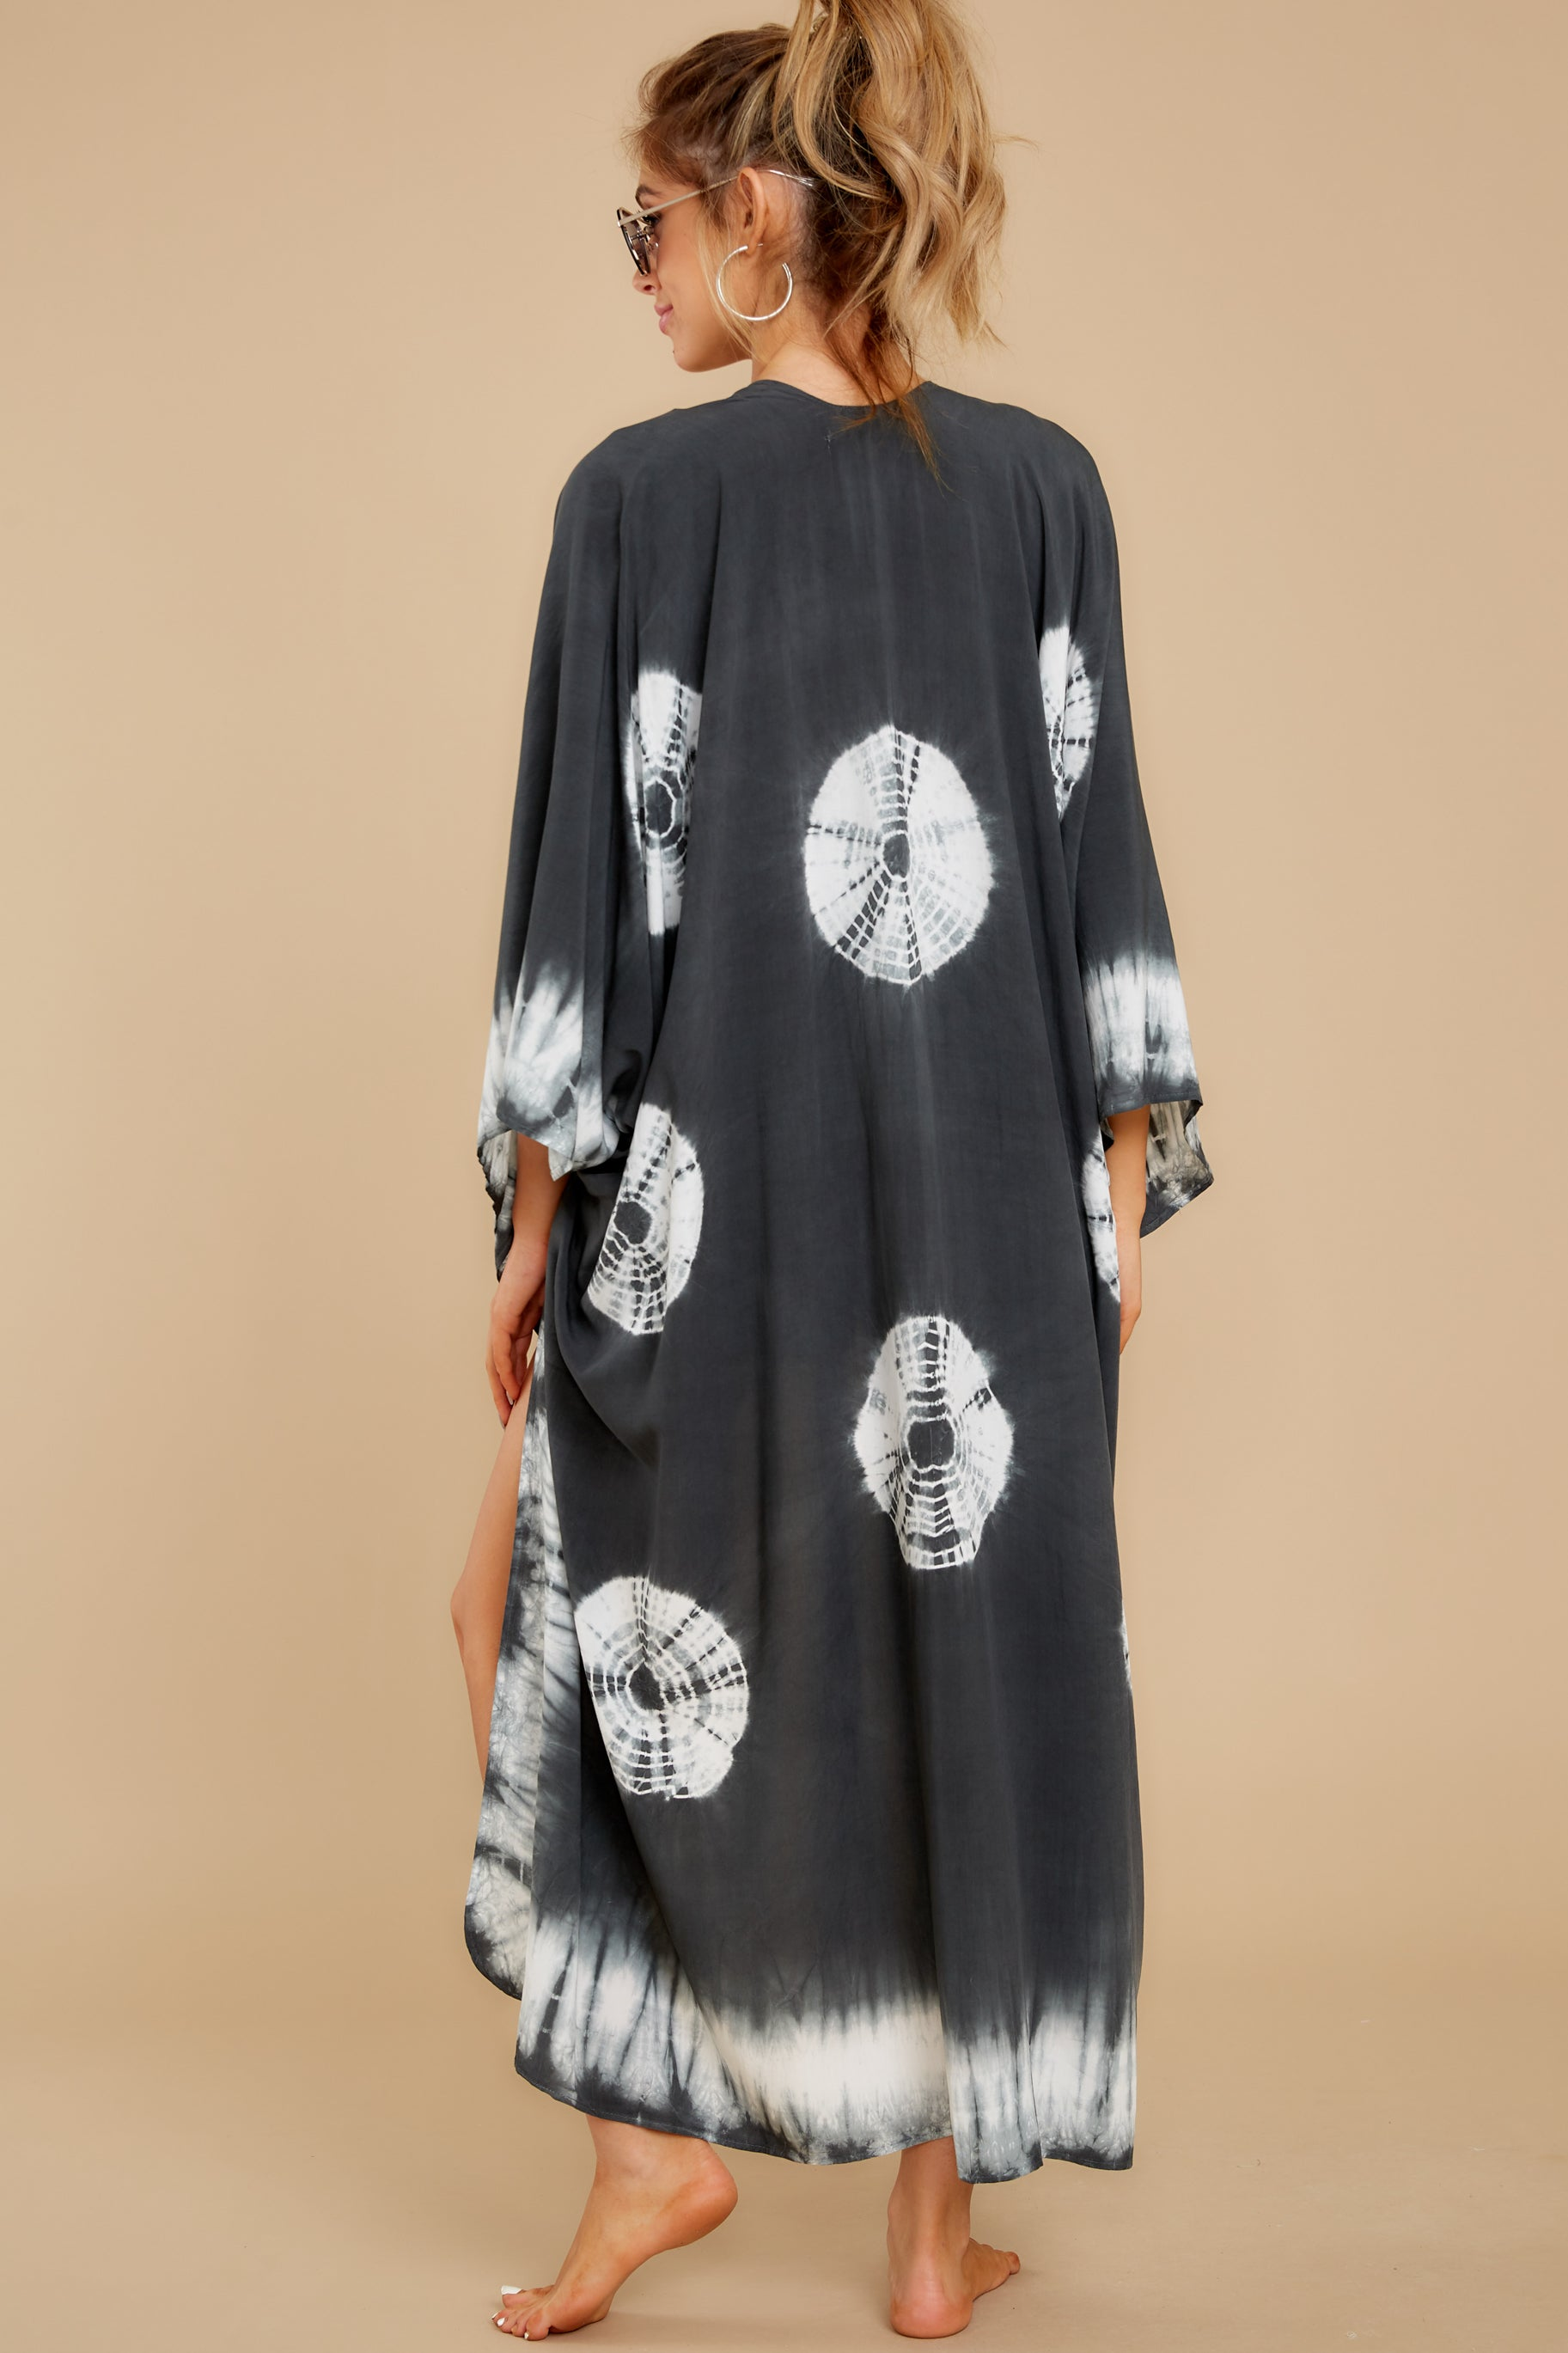 8 Focus On The Good Charcoal Tie Dye Kimono at reddress.com